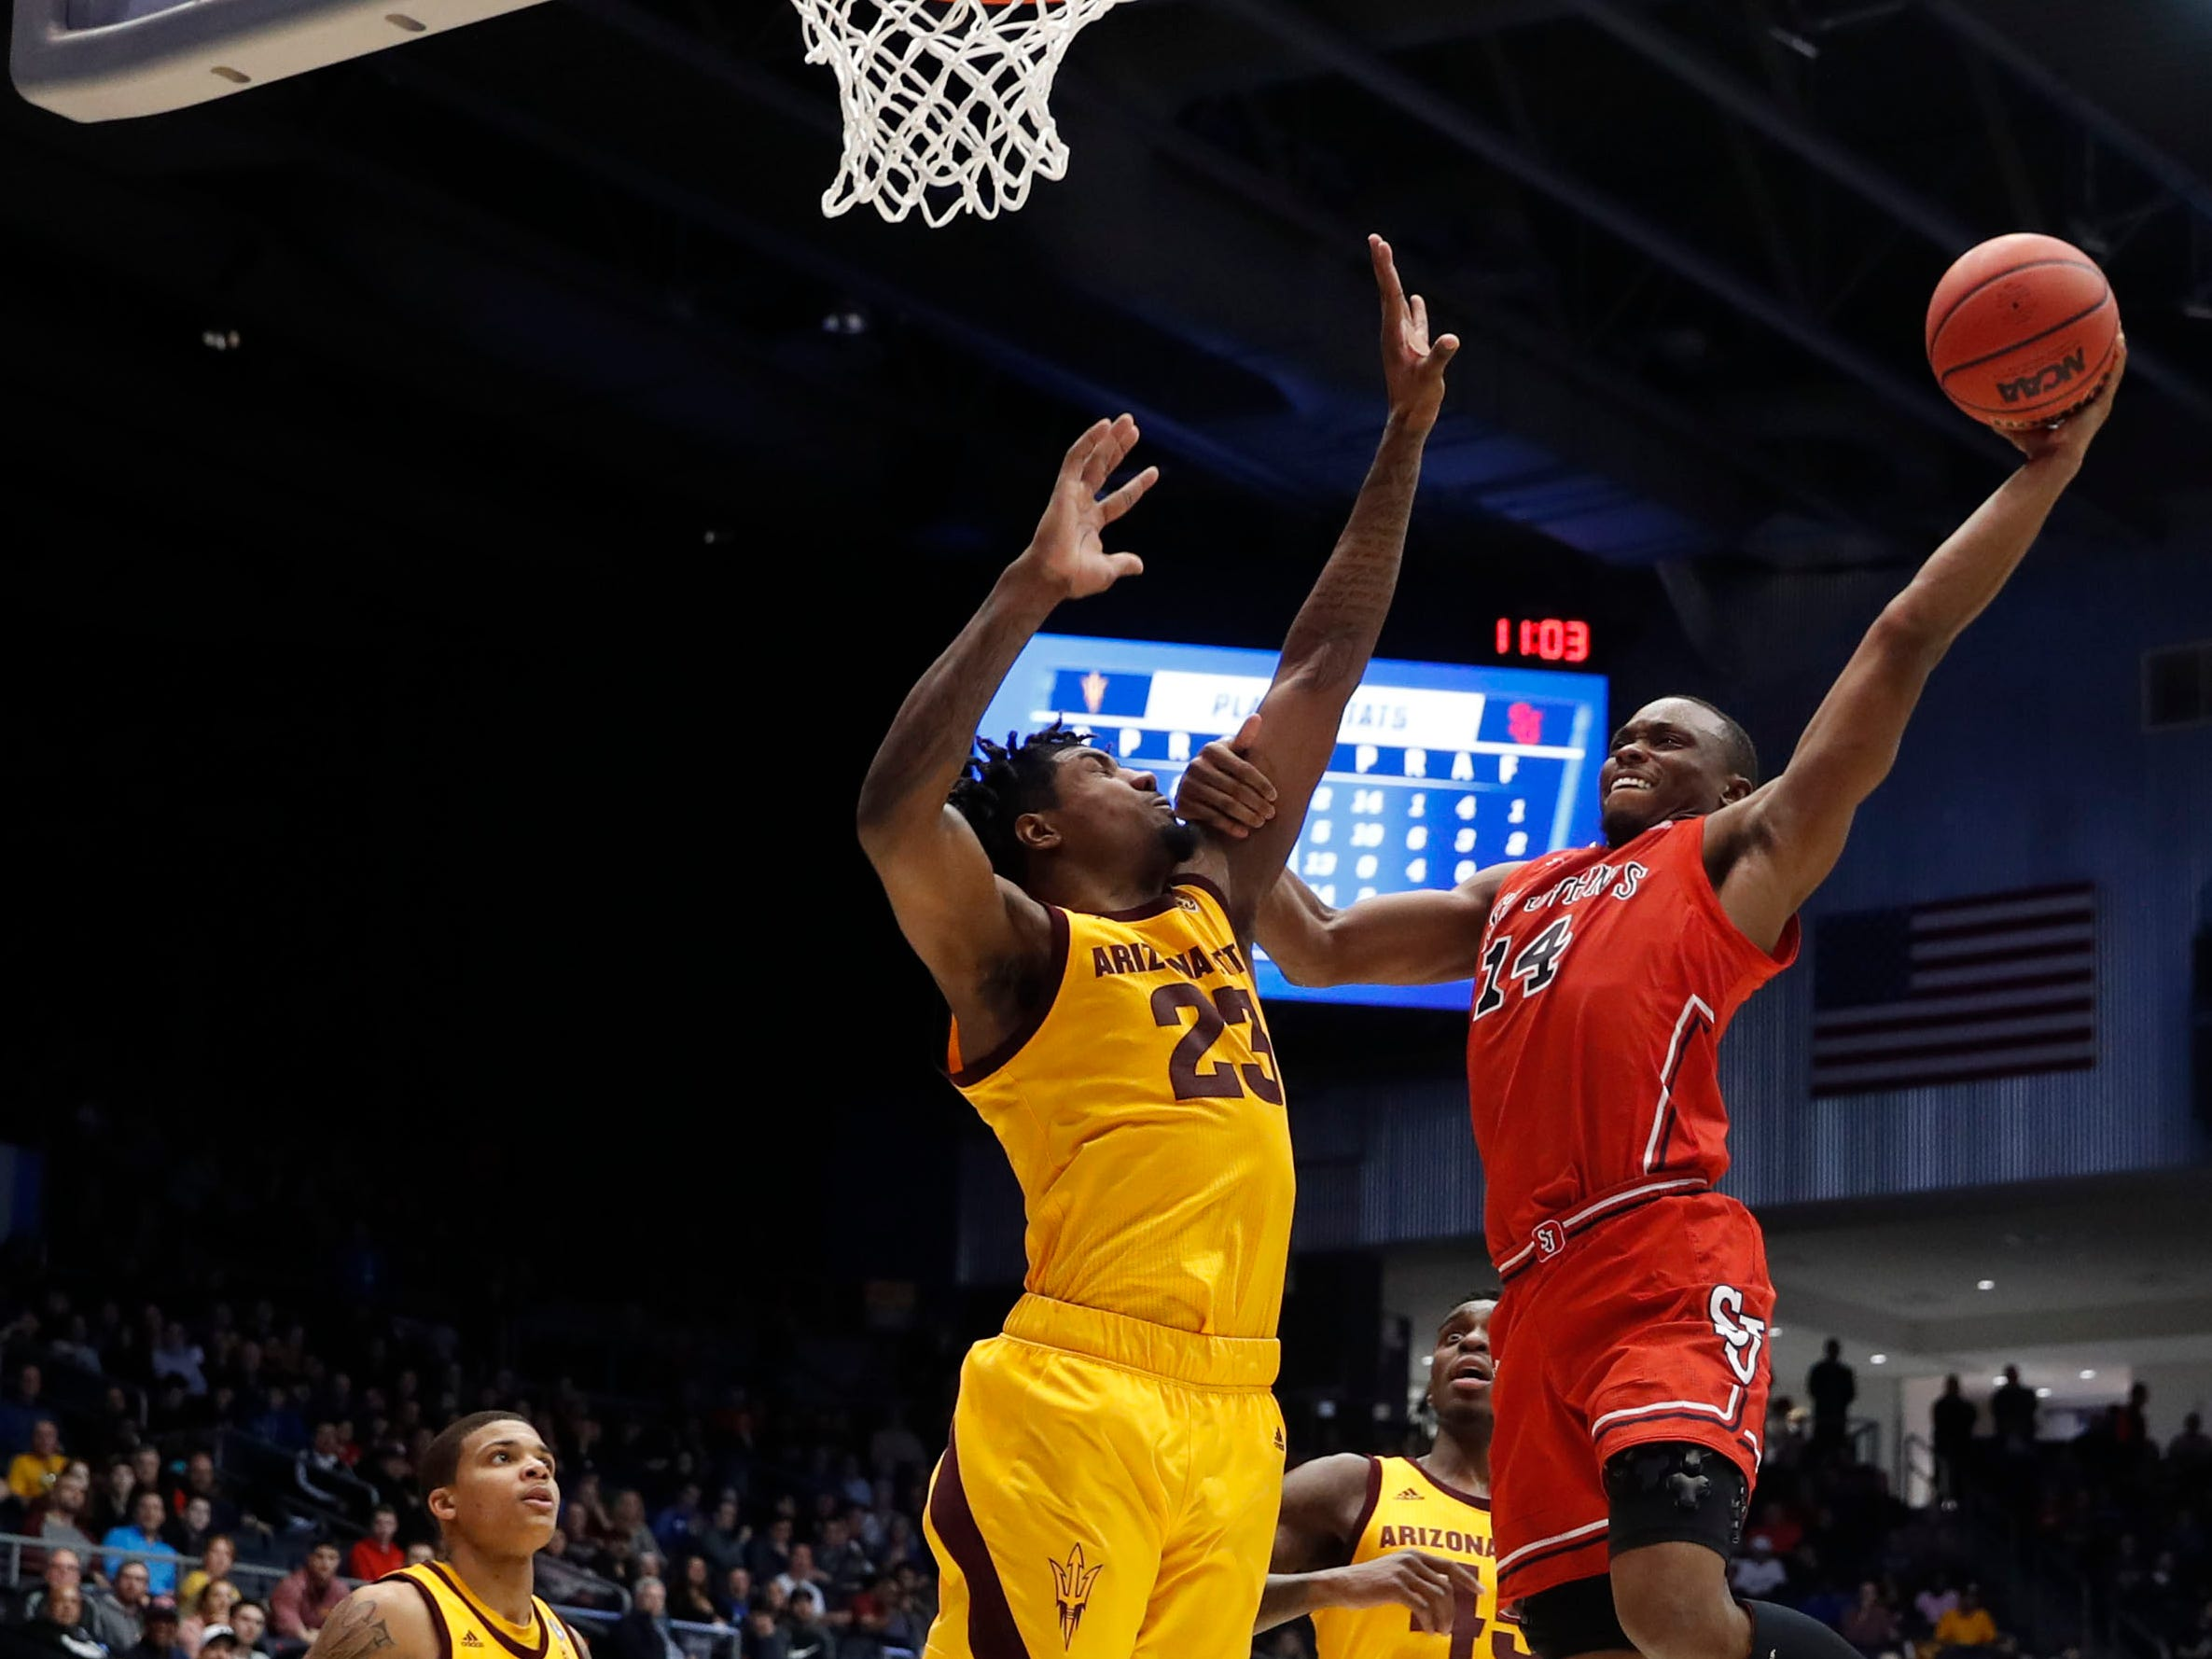 Mar 20, 2019; Dayton, OH, USA; St. John's Red Storm guard Mustapha Heron (14) goes to the basket defended by Arizona State Sun Devils forward Romello White (23) in the second half in the First Four of the 2019 NCAA Tournament at Dayton Arena. Mandatory Credit: Brian Spurlock -USA TODAY Sports